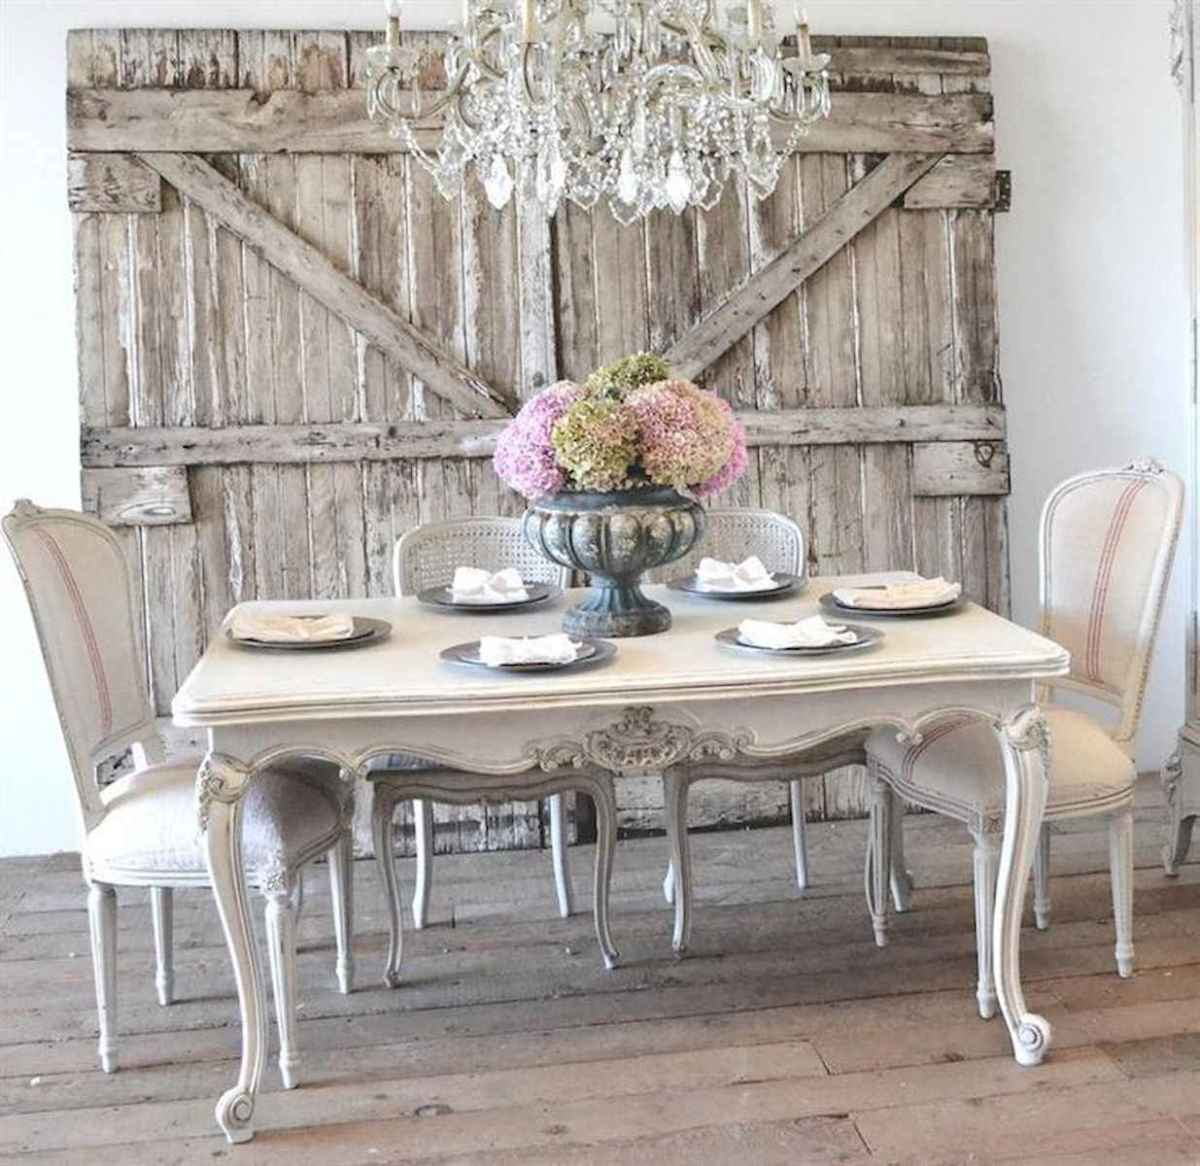 50 Vintage Dining Table Design Ideas And Decor (10)